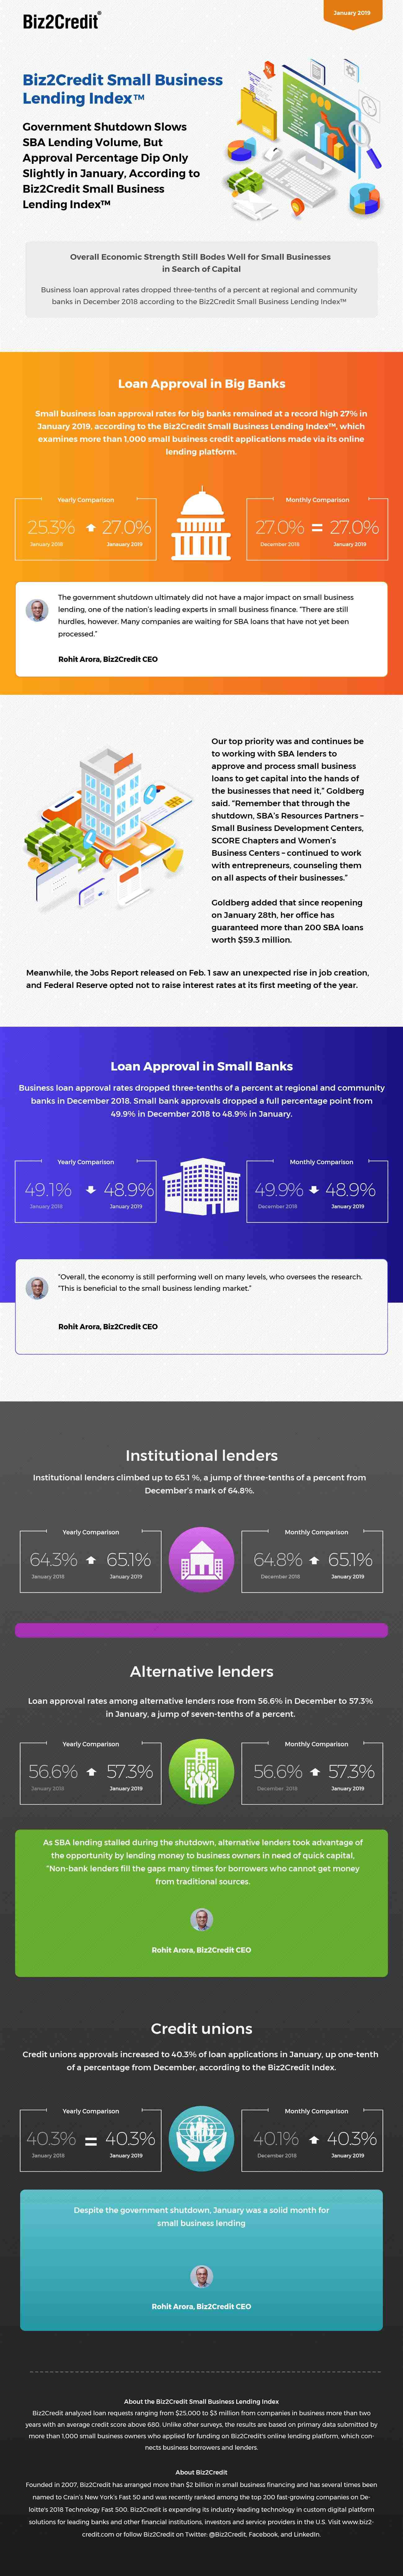 January 2019 Lending Index Infographic